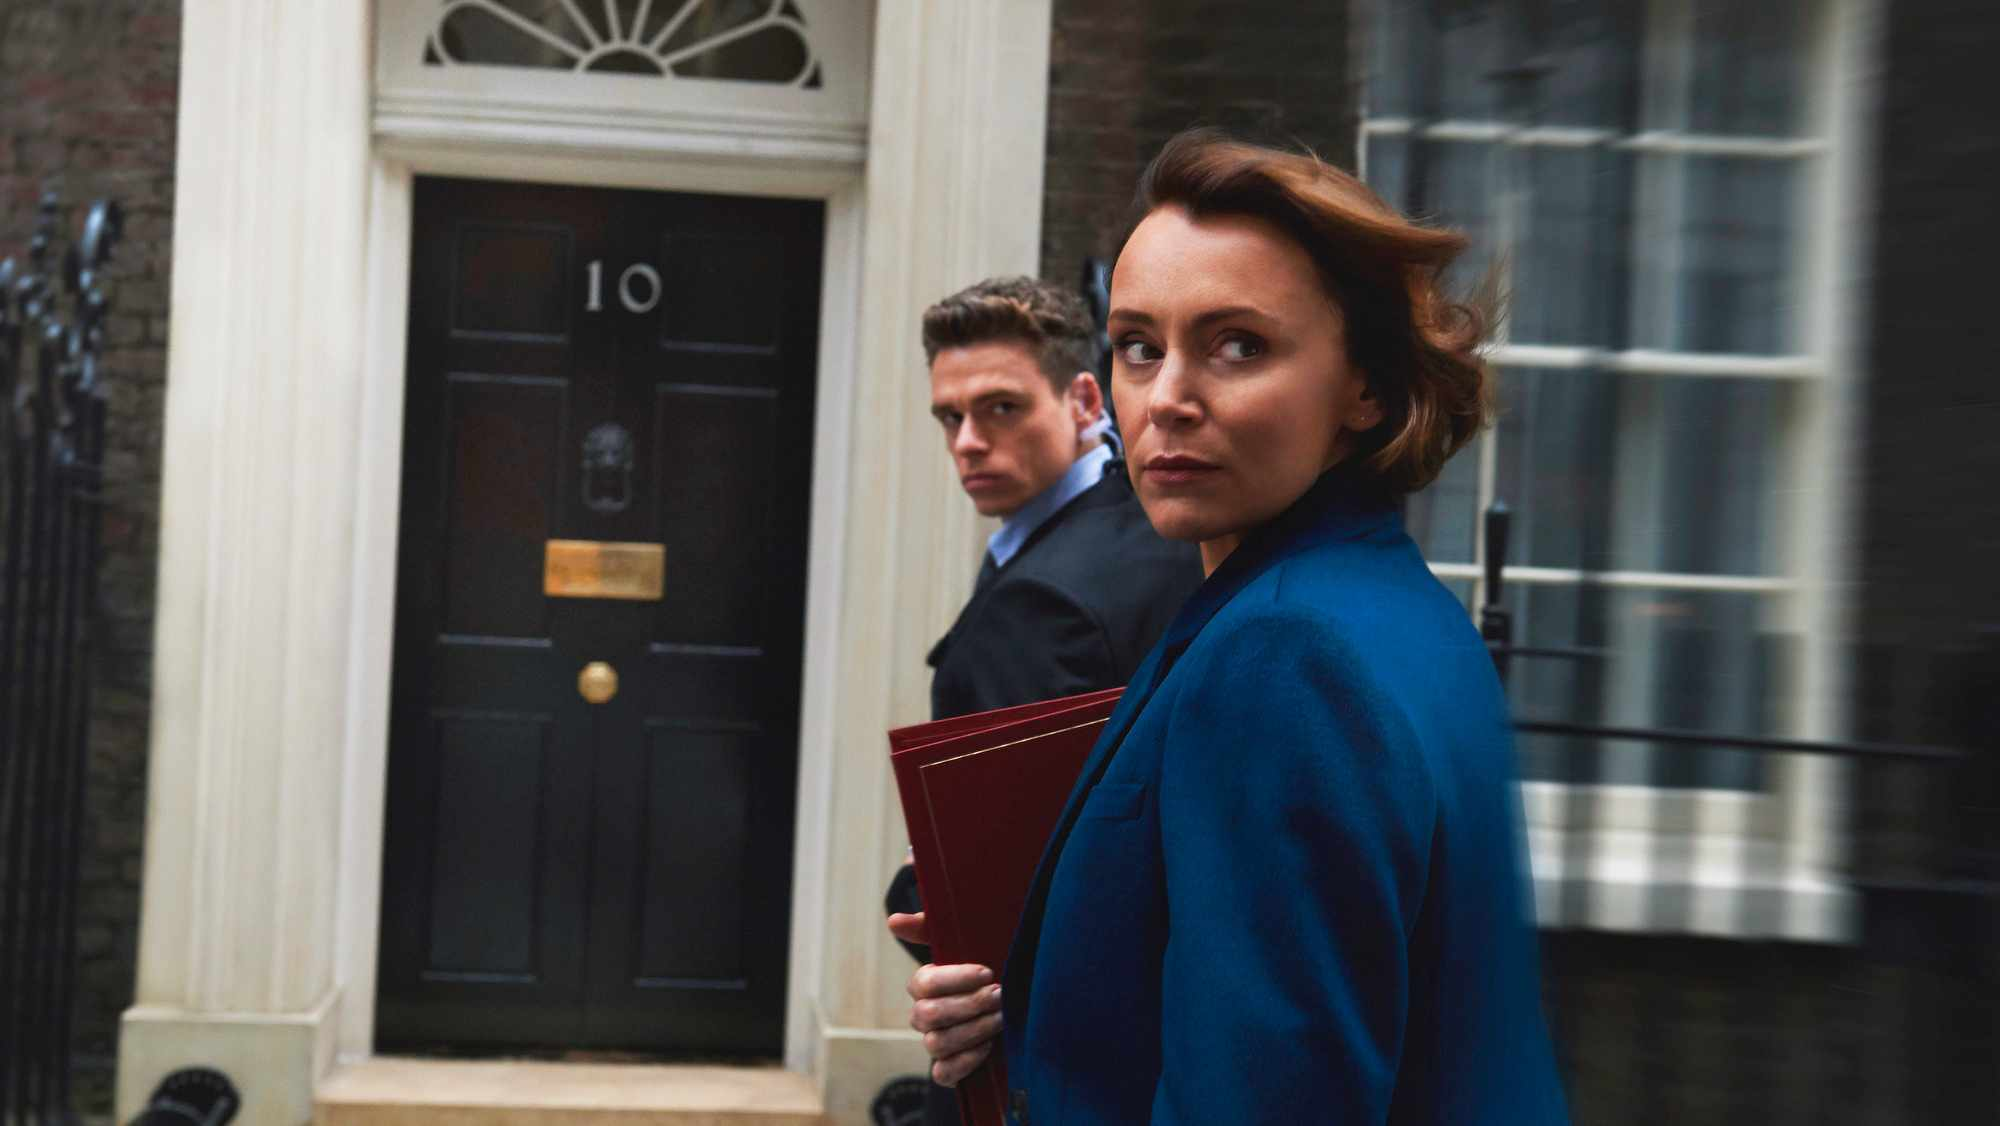 Bodyguard's Keeley Hawes and Richard Madden with UK Prime Minister Theresa May (BBC, Getty, HF)